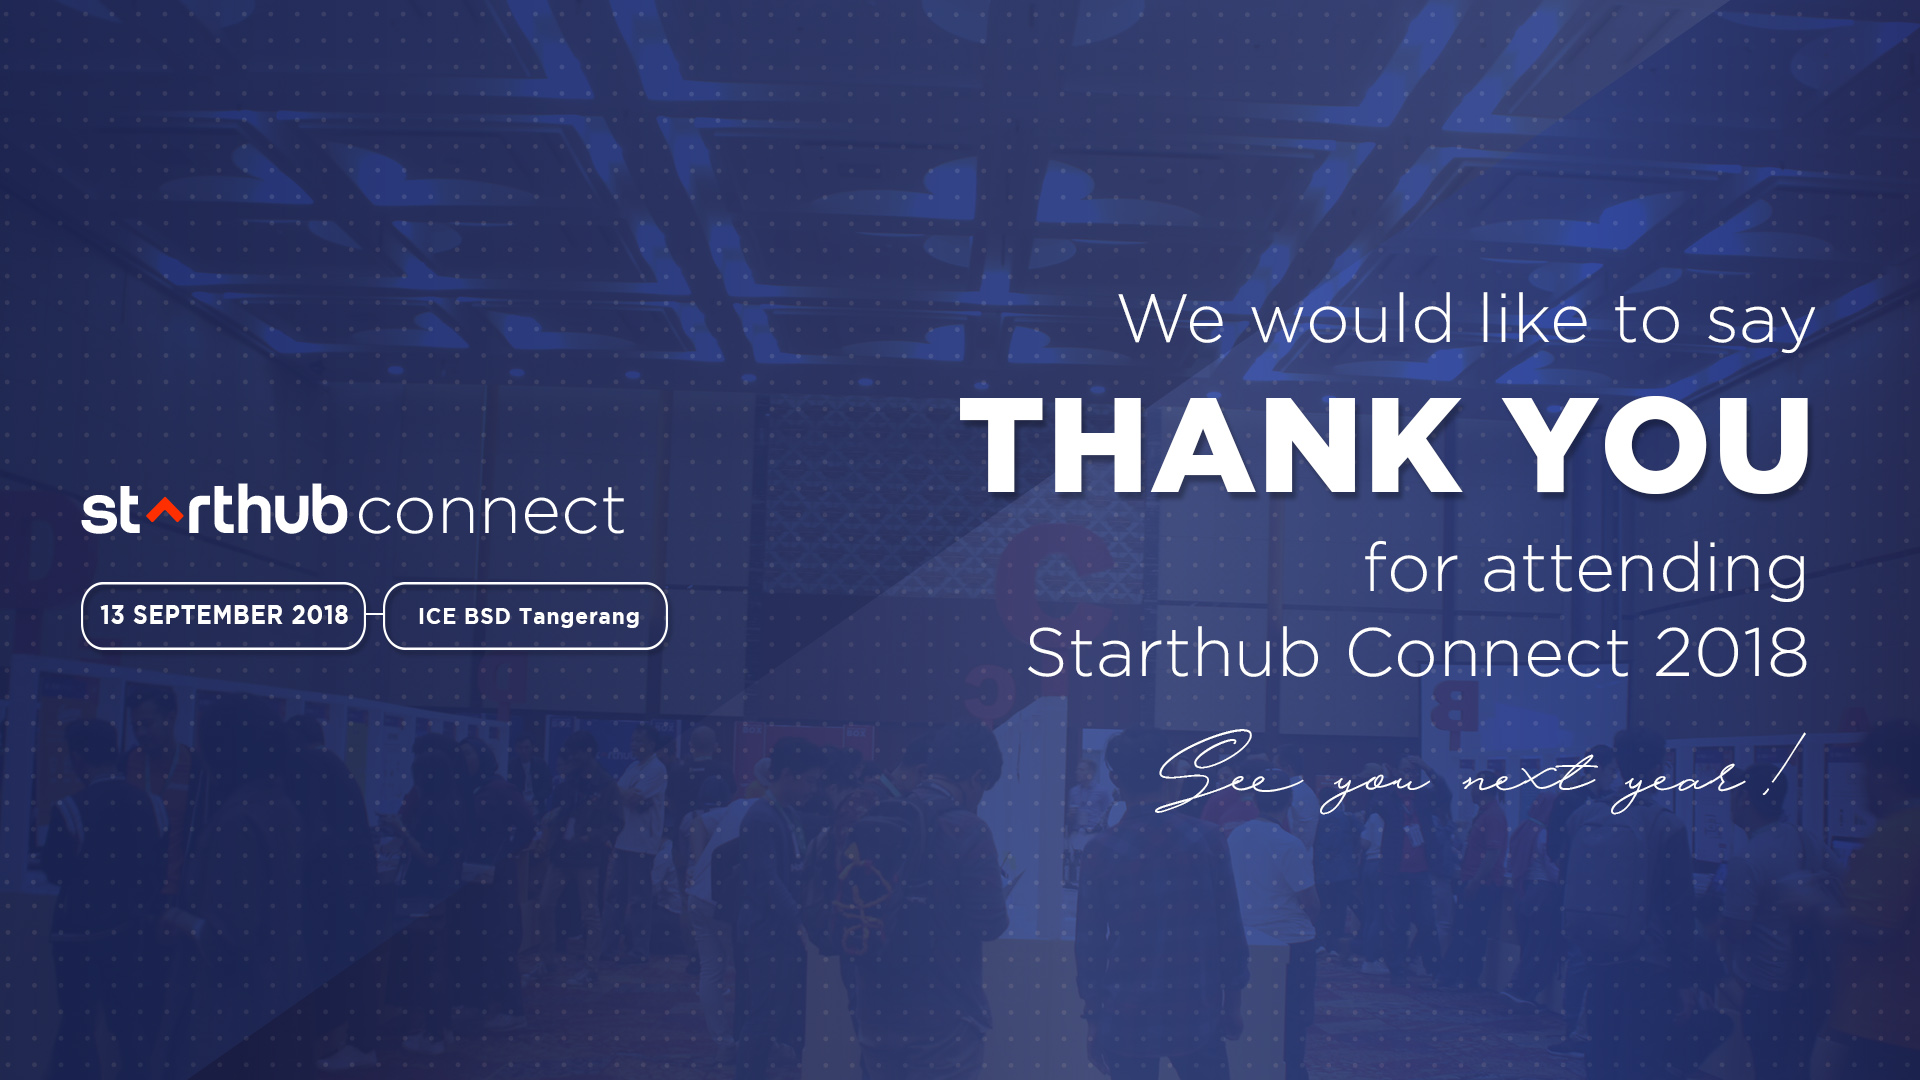 Starthub Connect - Thank you